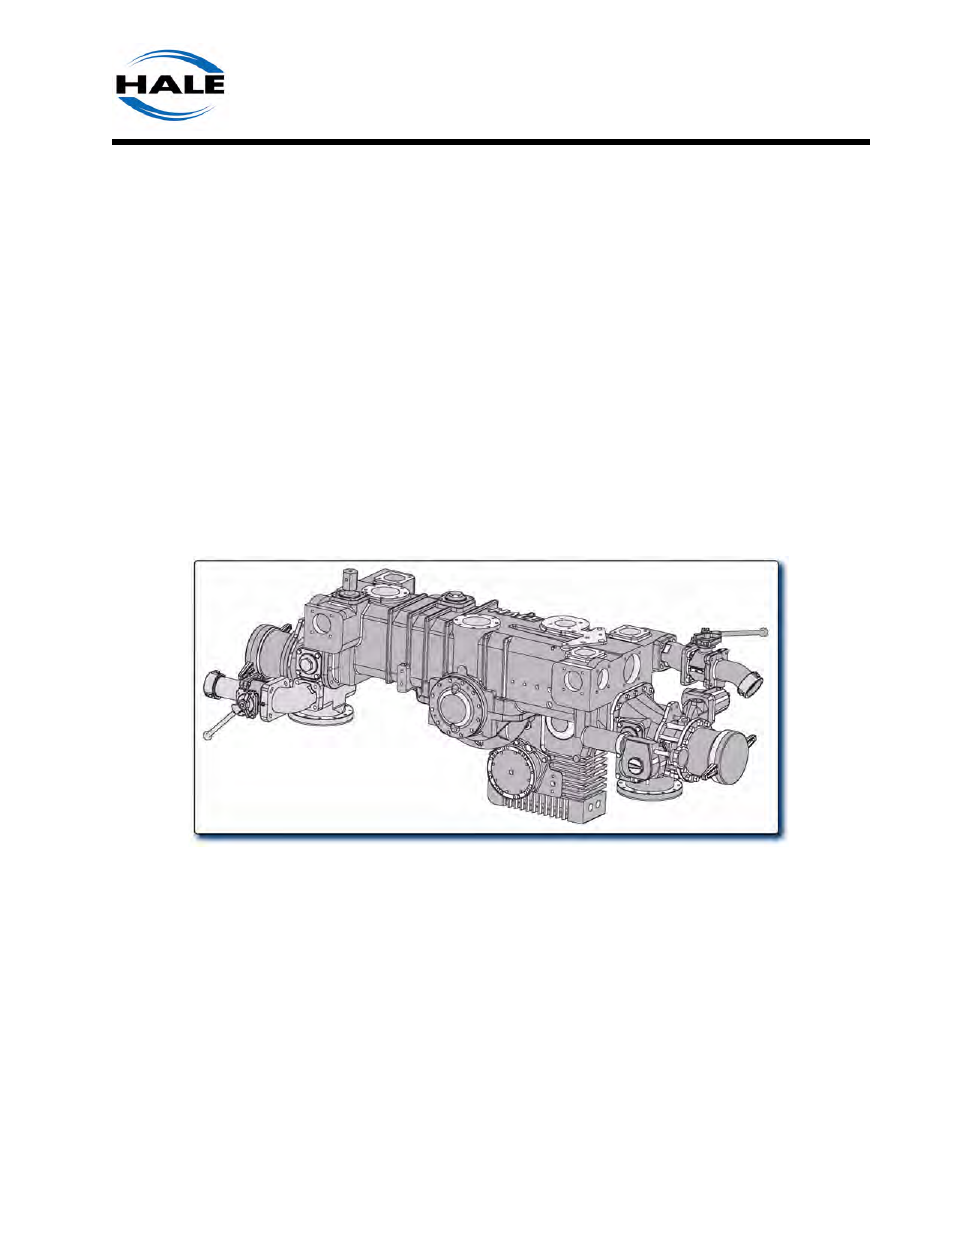 Hale Q Series Muscle User Manual | 302 pages | Also for: 8FG Hale Pump Pto Switch Wiring Diagram on